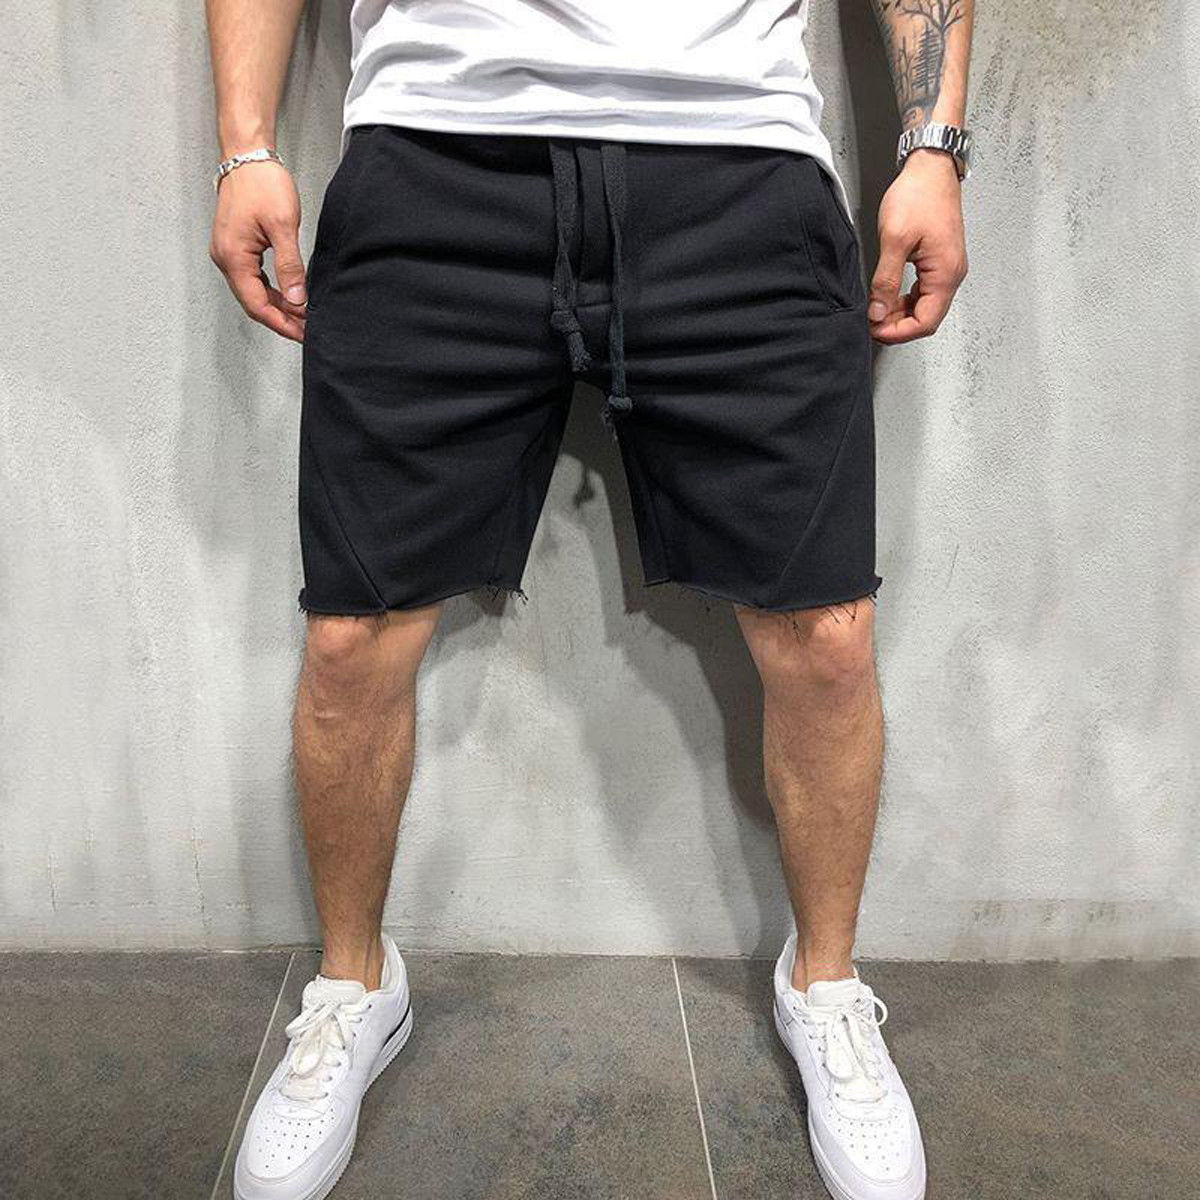 Men's Casual Short Pants Cotton Gym Fitness Jogging Running Sports Wear Shorts